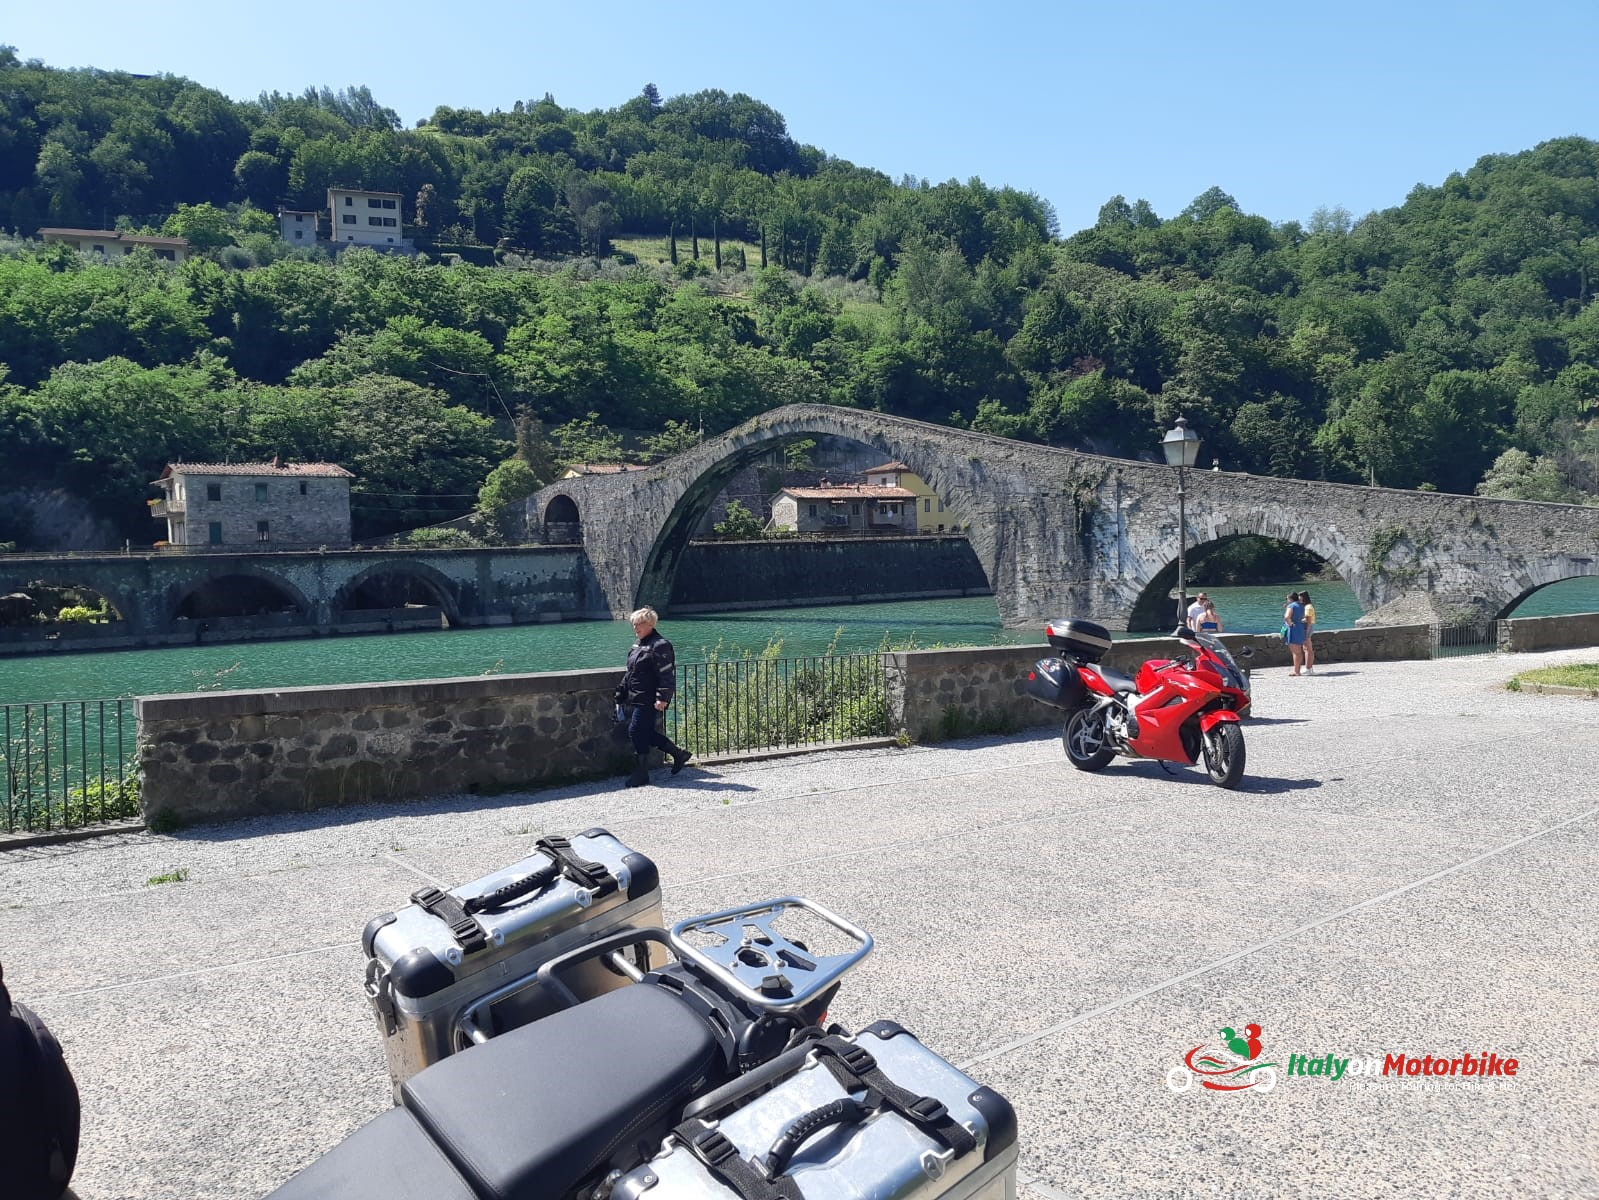 A bridge on the way to the Passo del Abetone on one of our motorcycle tour in Italy